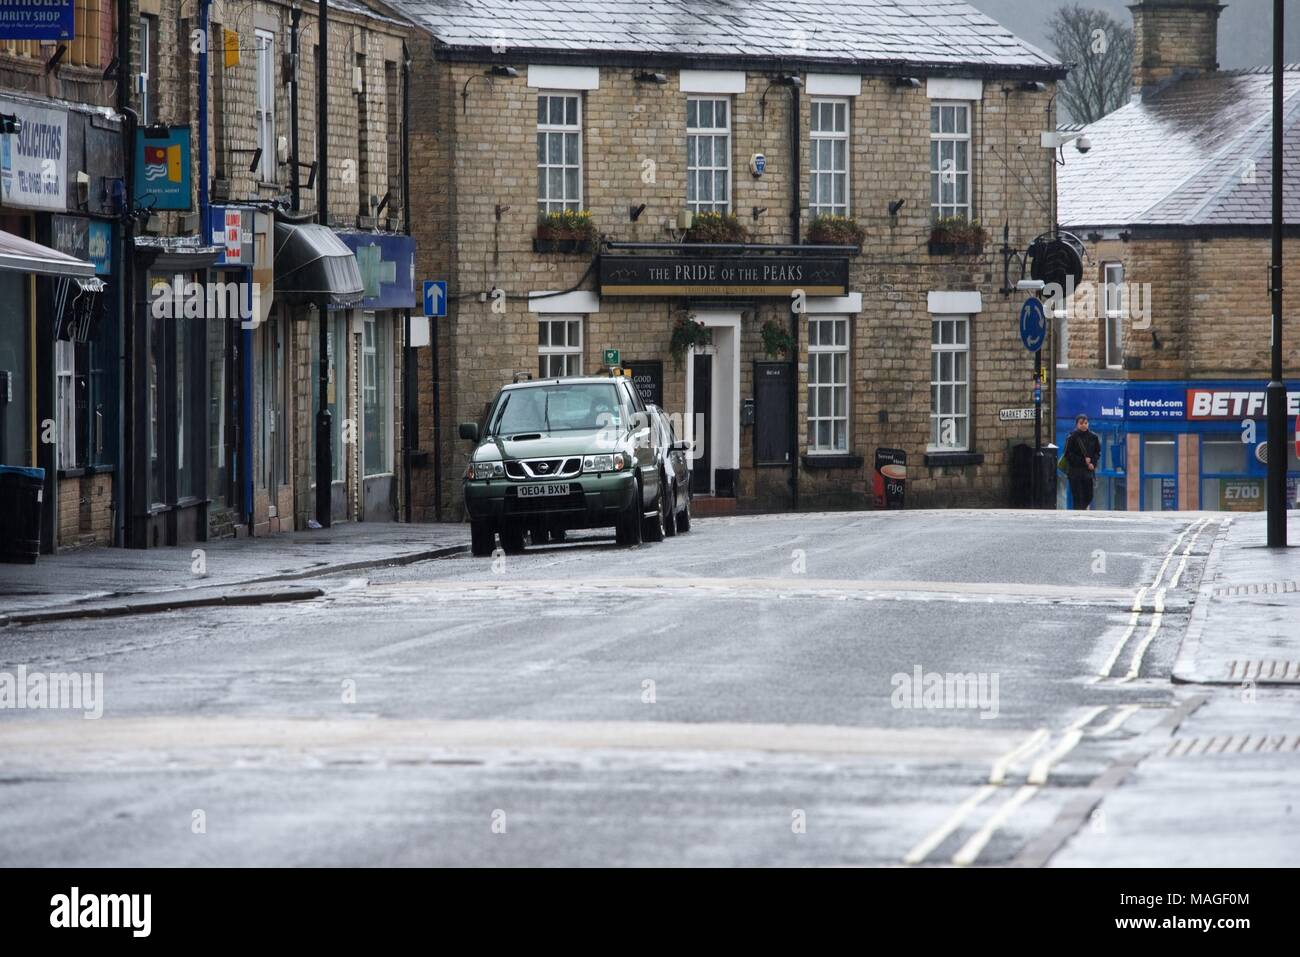 New Mills. High Peak. Derbyshire. 2nd April 2018. UK Weather: A wet and a solitary figure in the main street in New Mills on Easter Monday morning. Credit: John Fryer/Alamy Live News - Stock Image